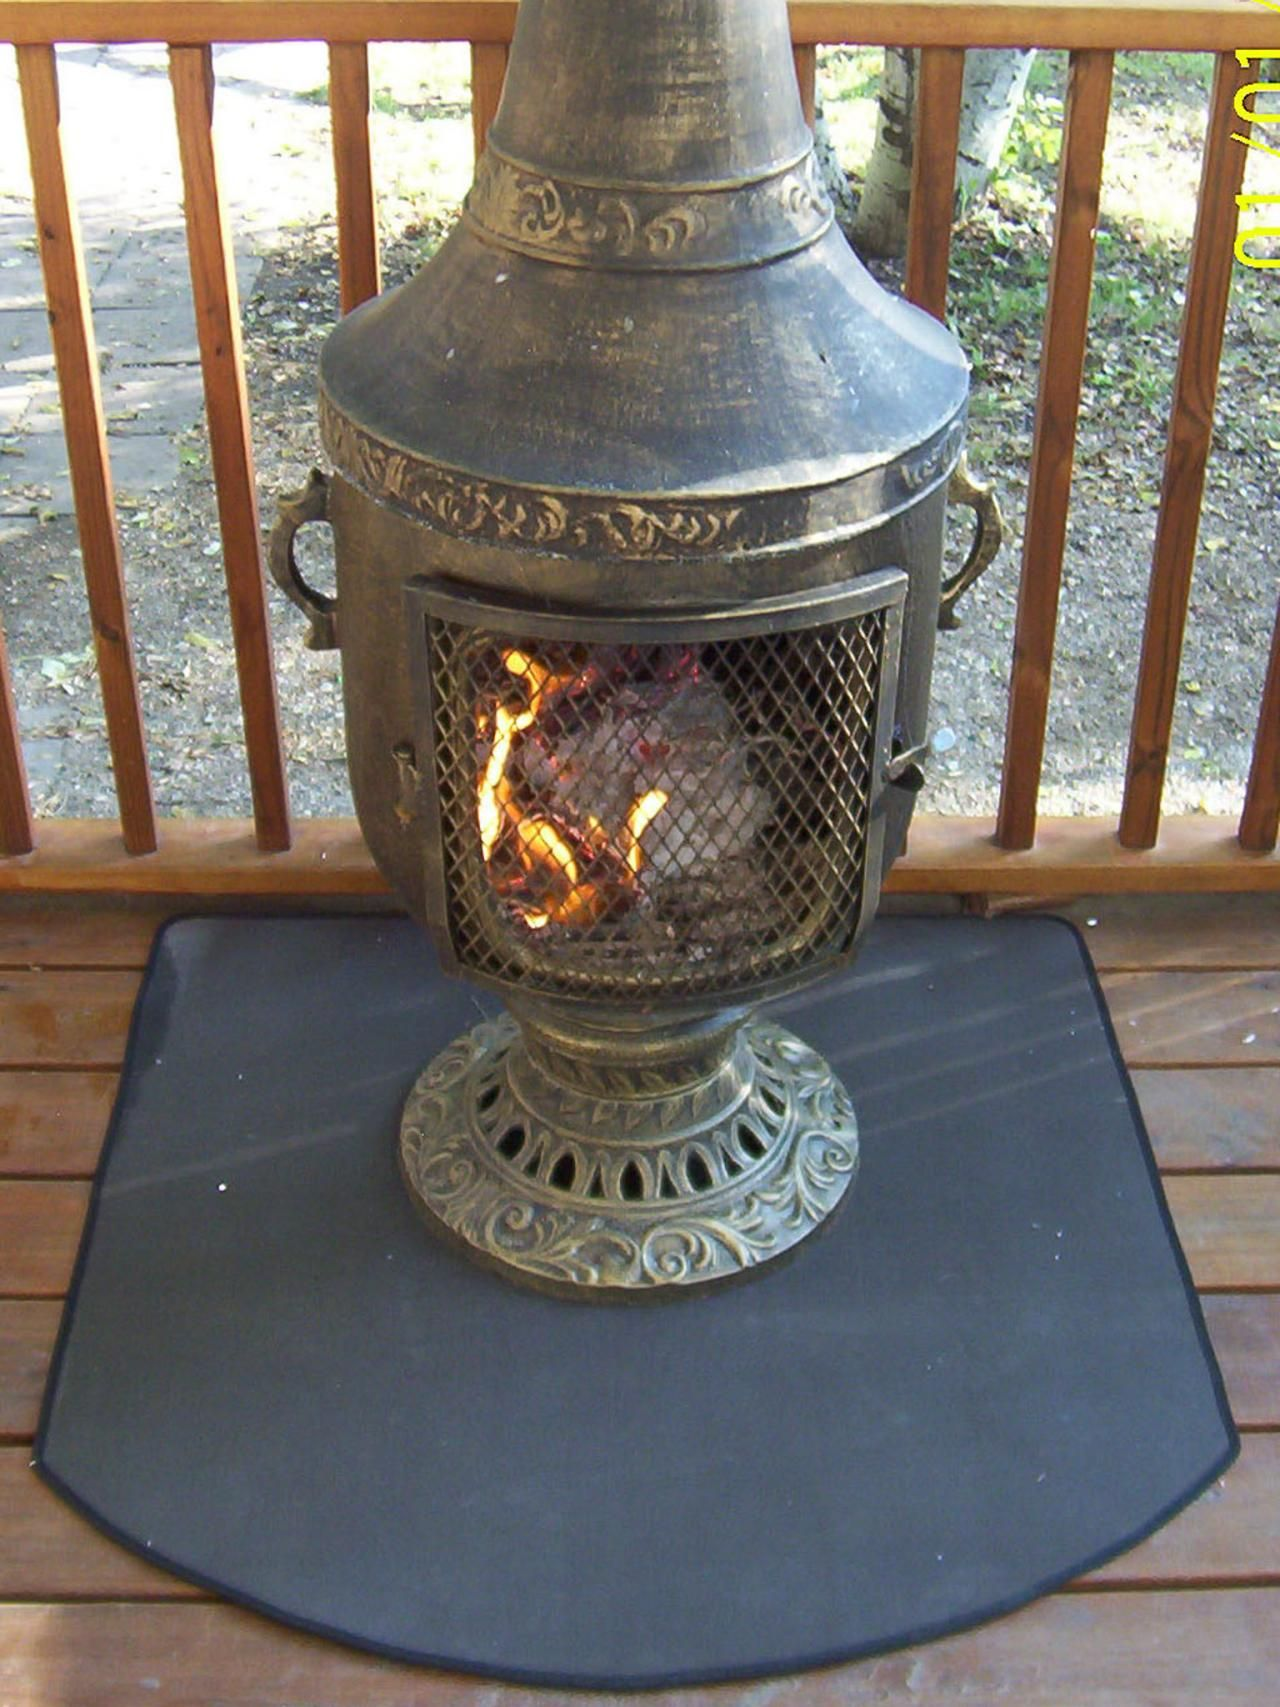 if your outdoor fireplace is a chiminea and you need to protect